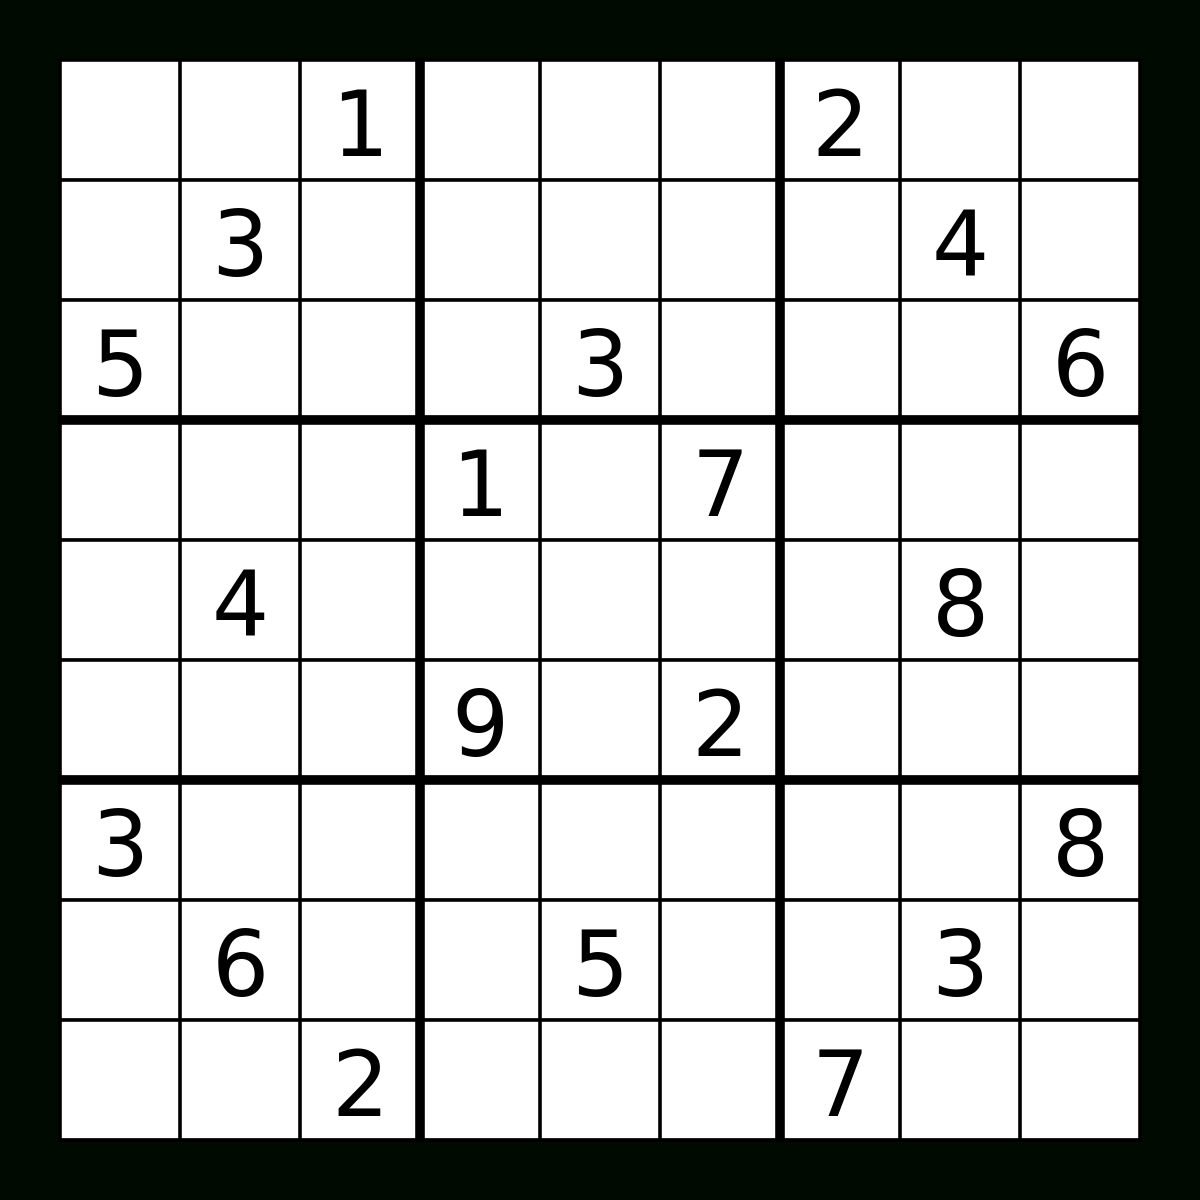 File:oceans Sudoku20 M3 Puzzle.svg - Wikimedia Commons